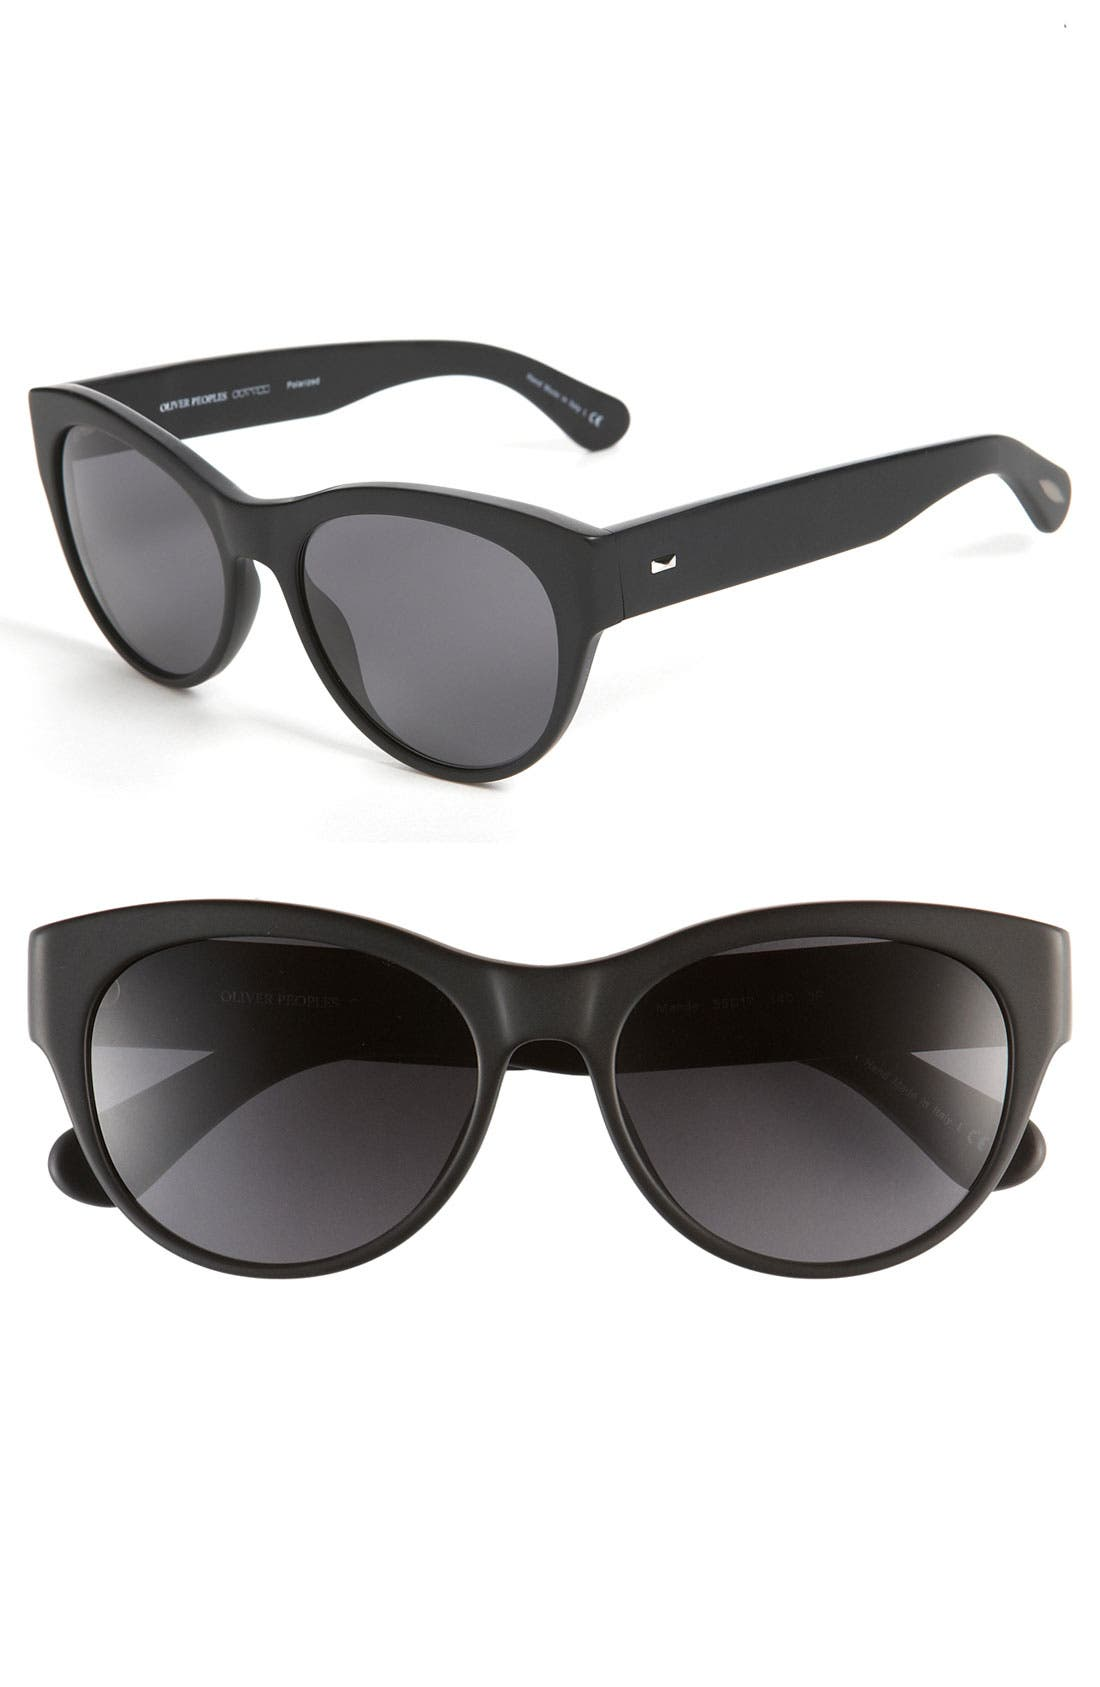 Main Image - Oliver Peoples 'Mande' 55mm Polarized Cat Eye Sunglasses